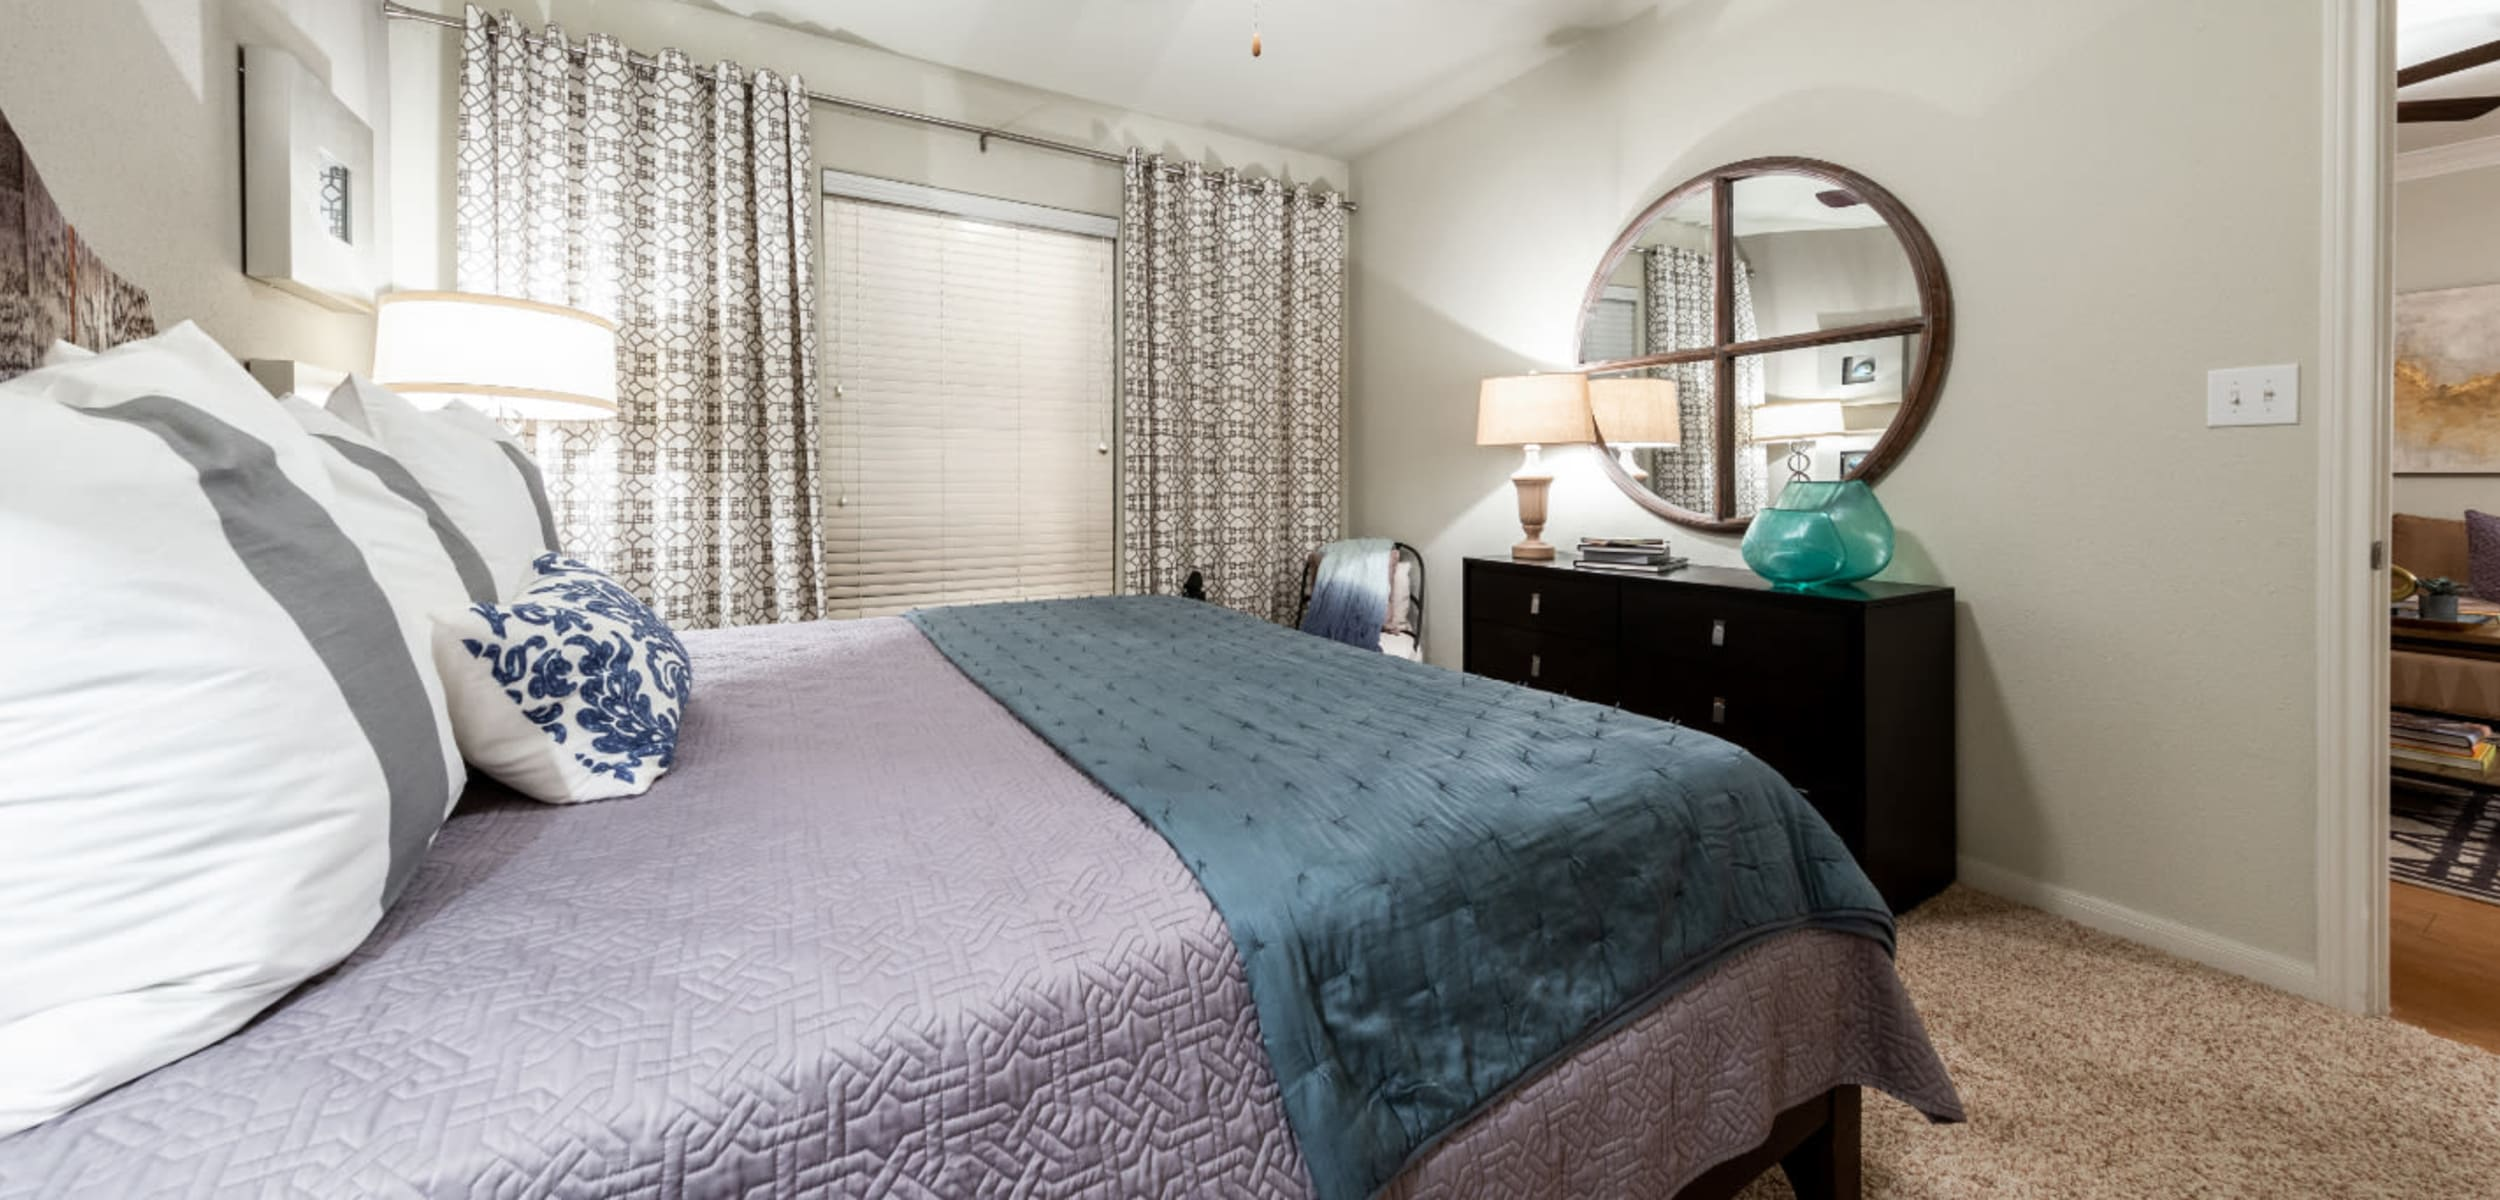 Carpeted bedroom with window at Marquis at the Reserve in Katy, Texas